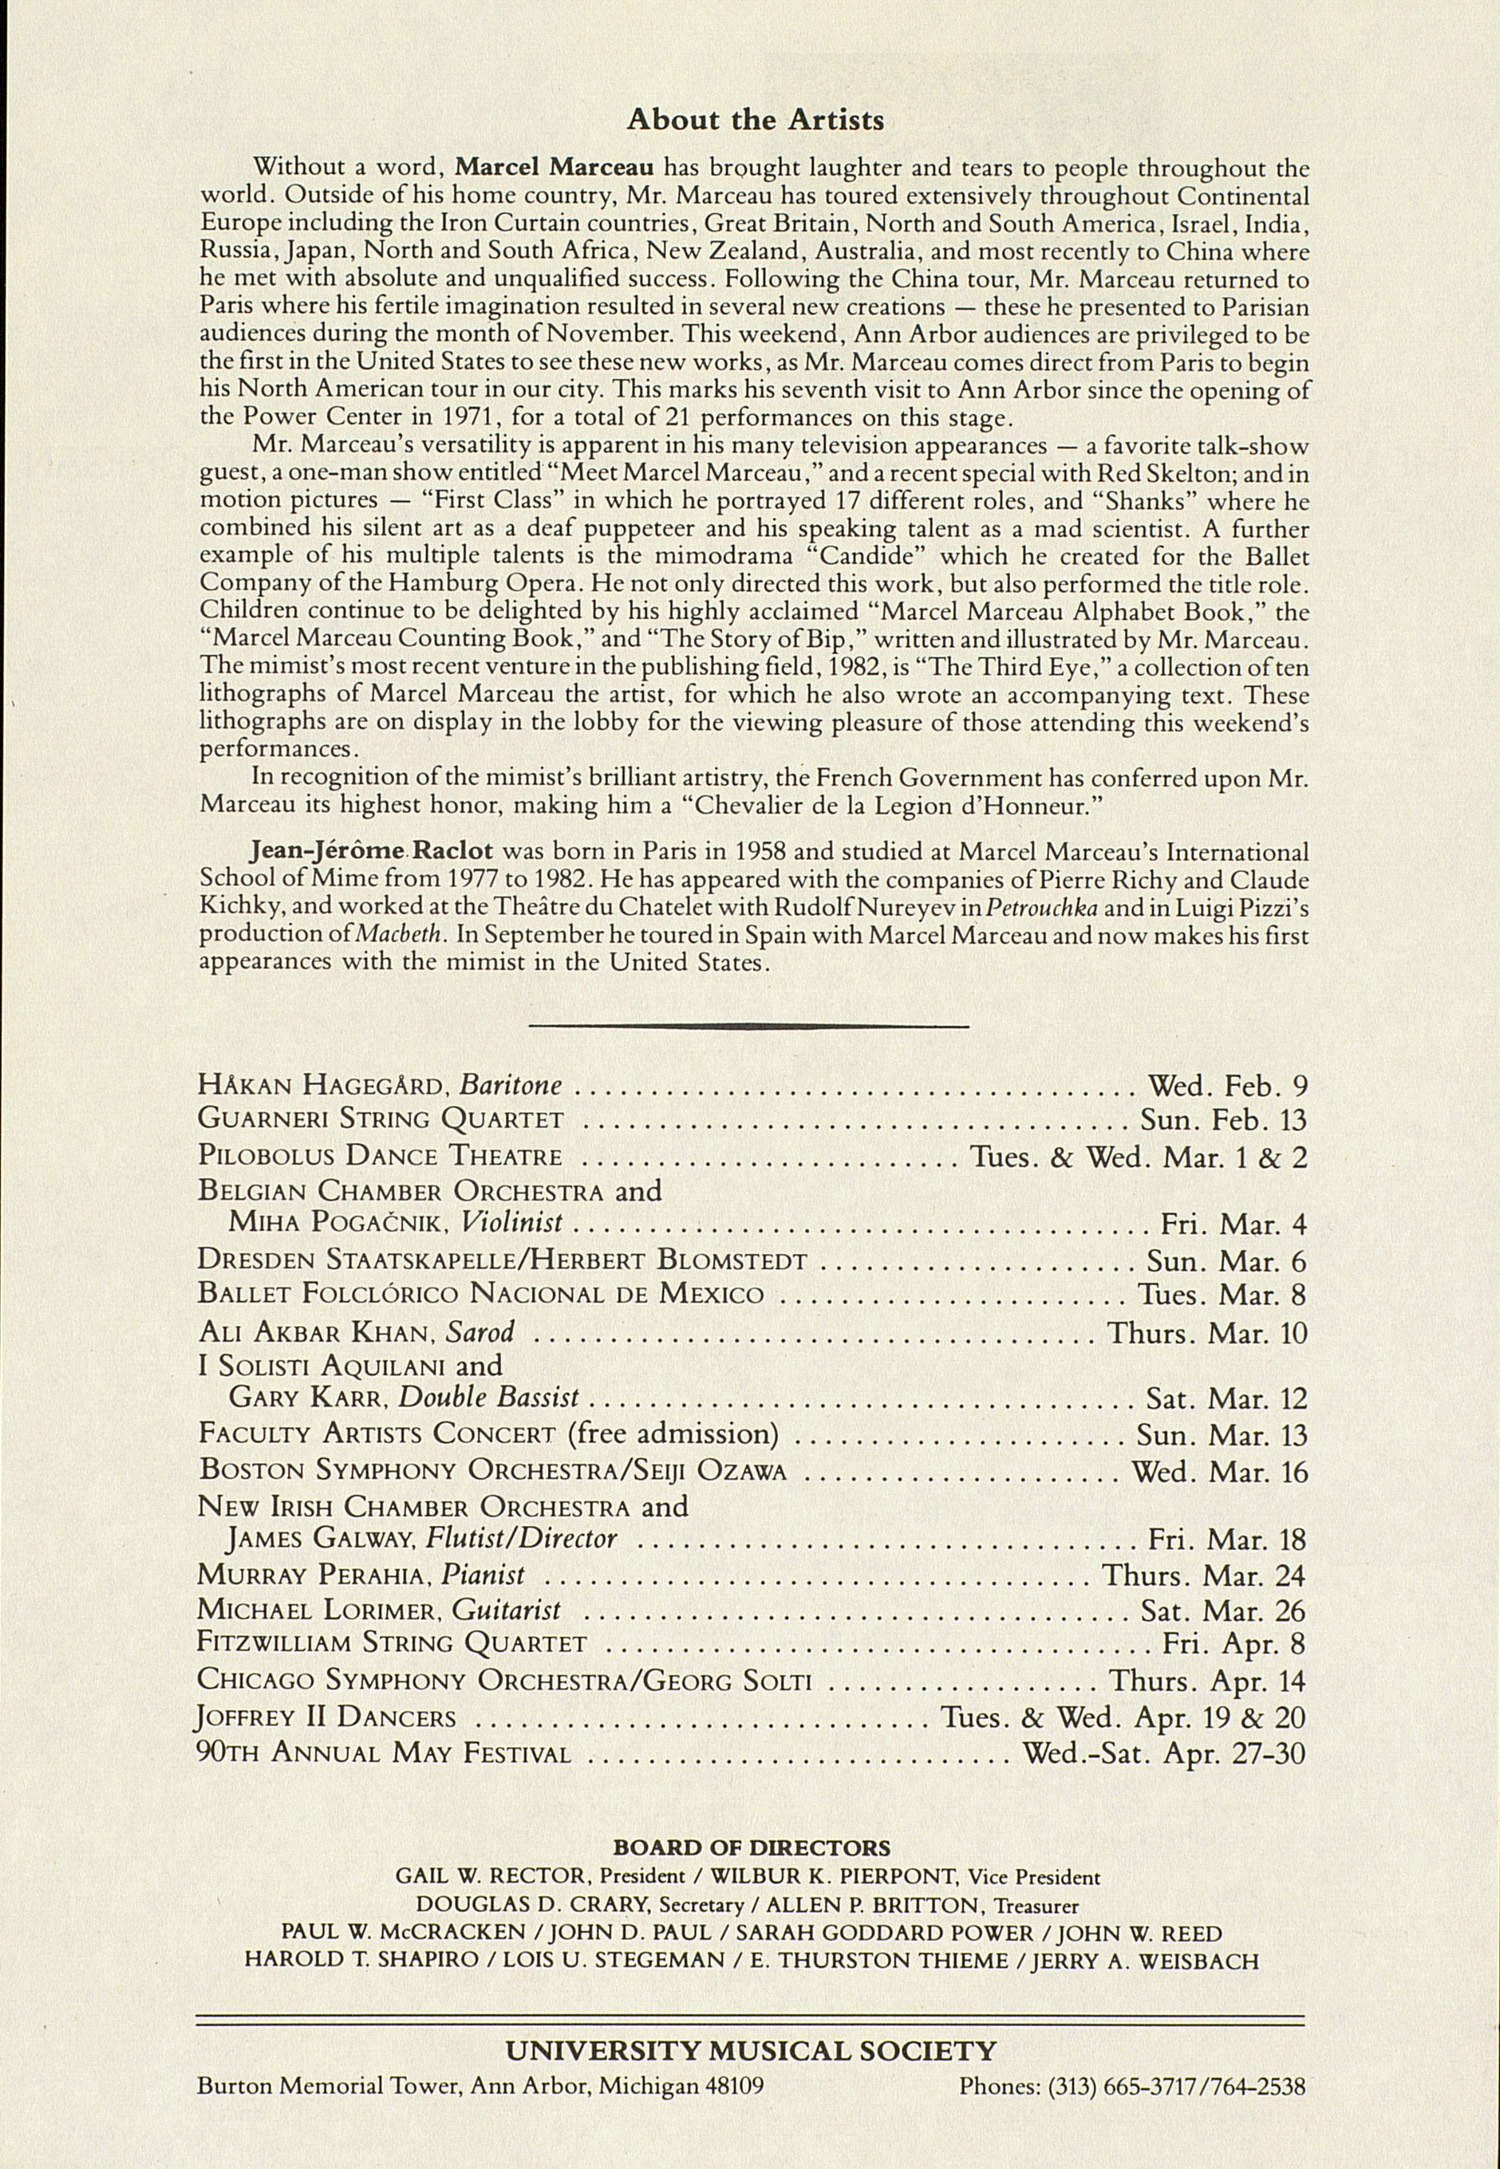 UMS Concert Program, January 30, 1983: International Presentations Of Music & Dance --  image